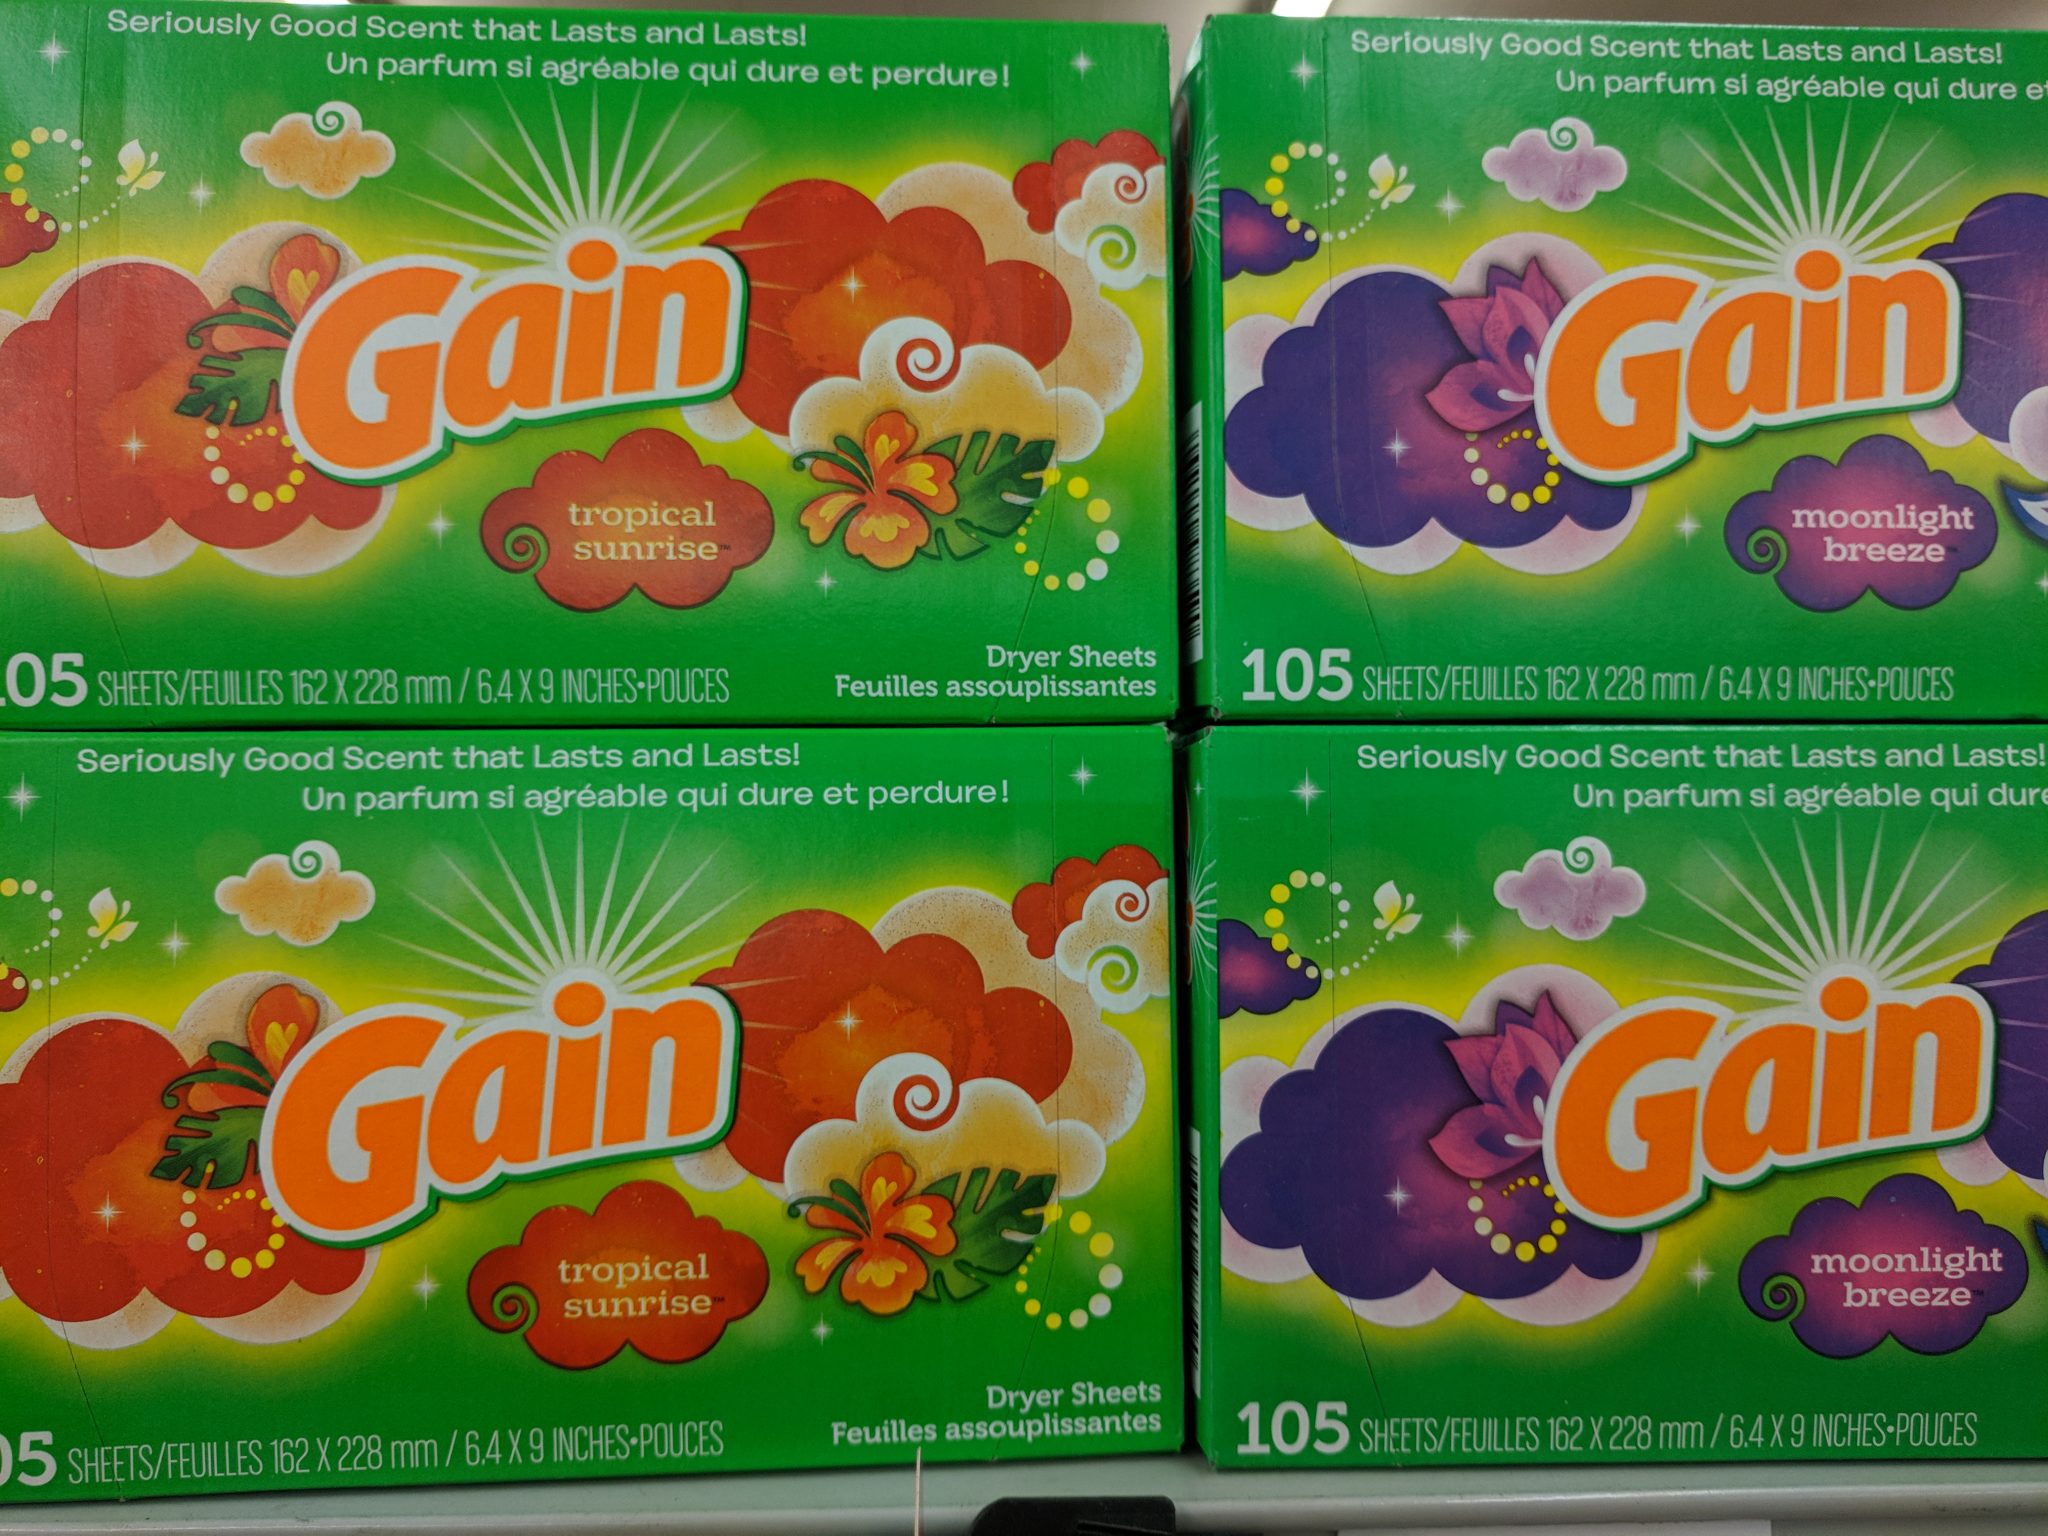 RARE Stock Up Deal on Gain Dryer Sheets at Walmart!!! Printable Deal! GO GO GO!!